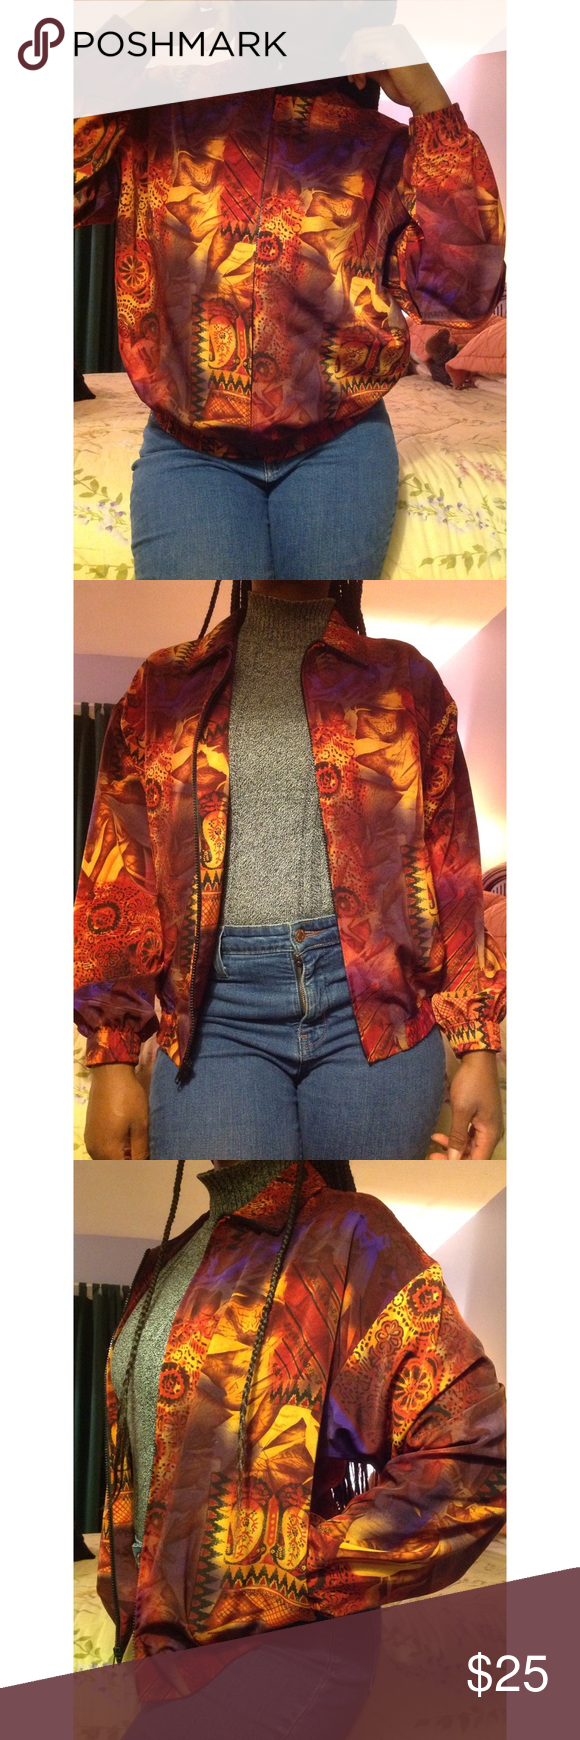 Funky 90s Print Bomber Zipup Jacket With Pocktes 90s Fashion Inspired Do Not Know If It Was Actually Made In The 90s Lol Fashion 90s Fashion Clothes Design [ 1740 x 580 Pixel ]